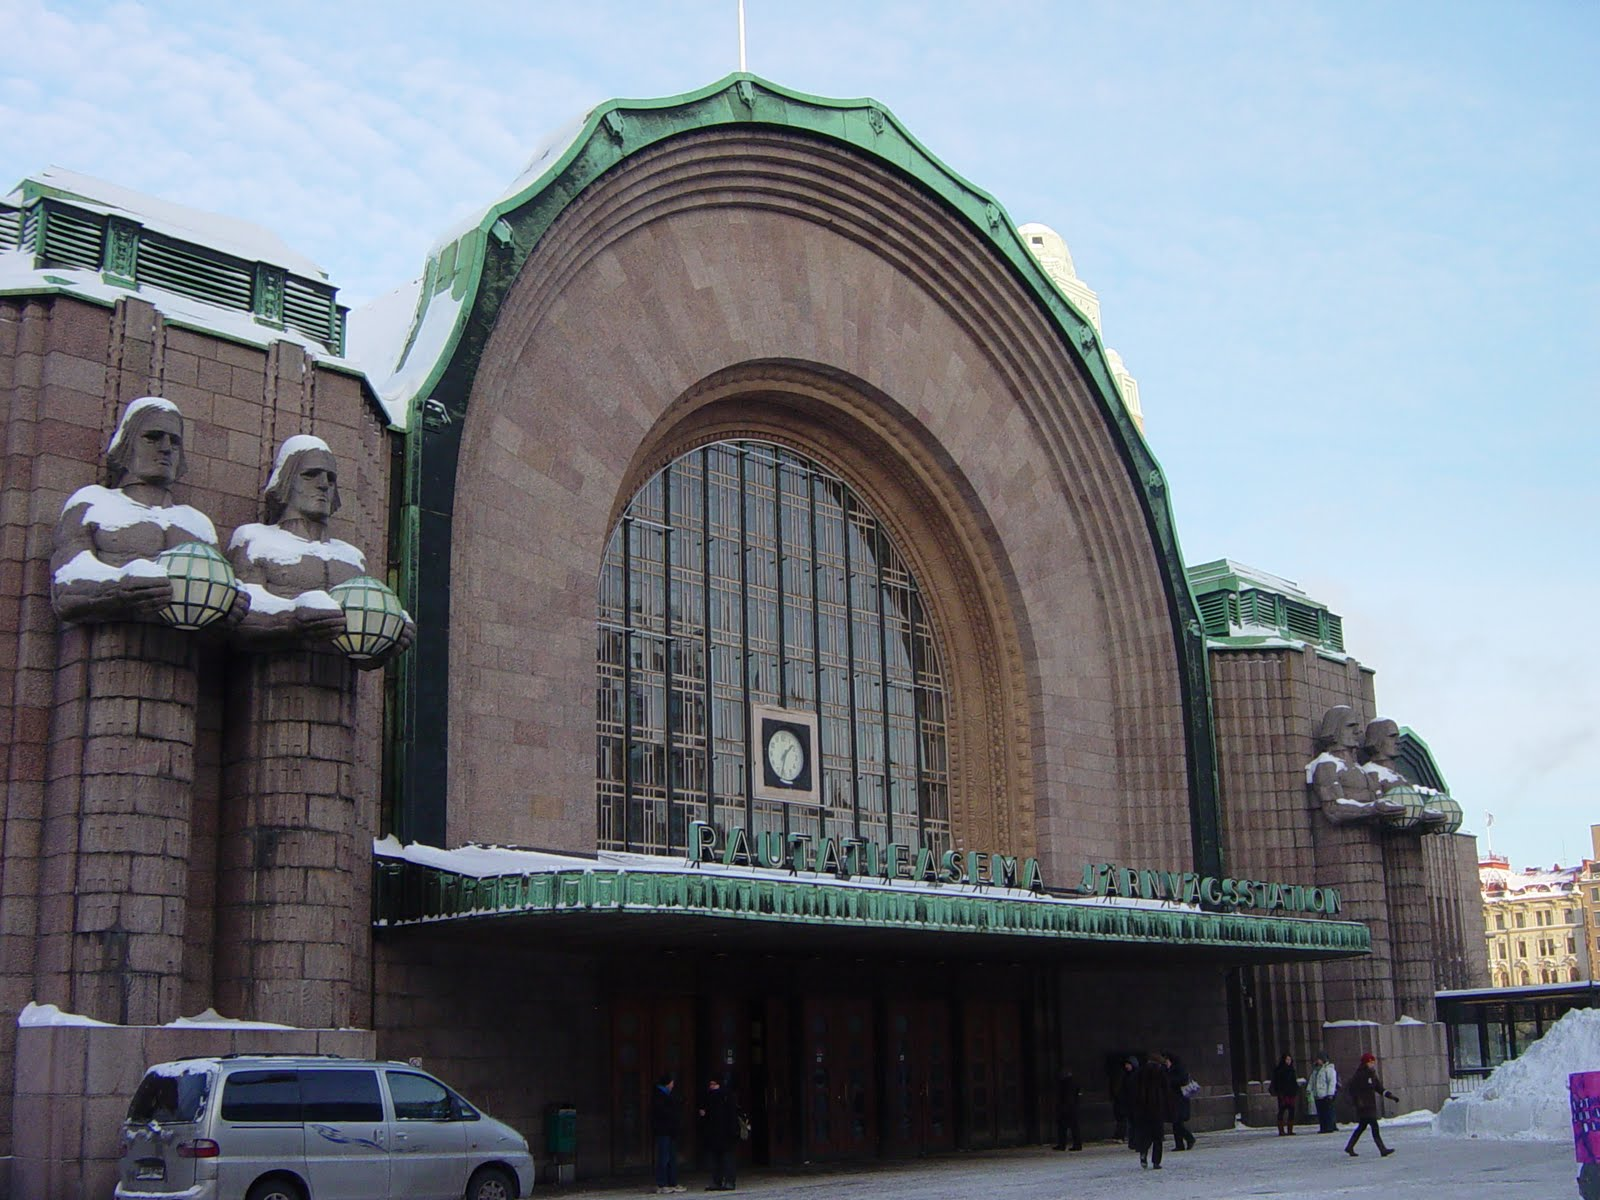 Helsinki Train Station